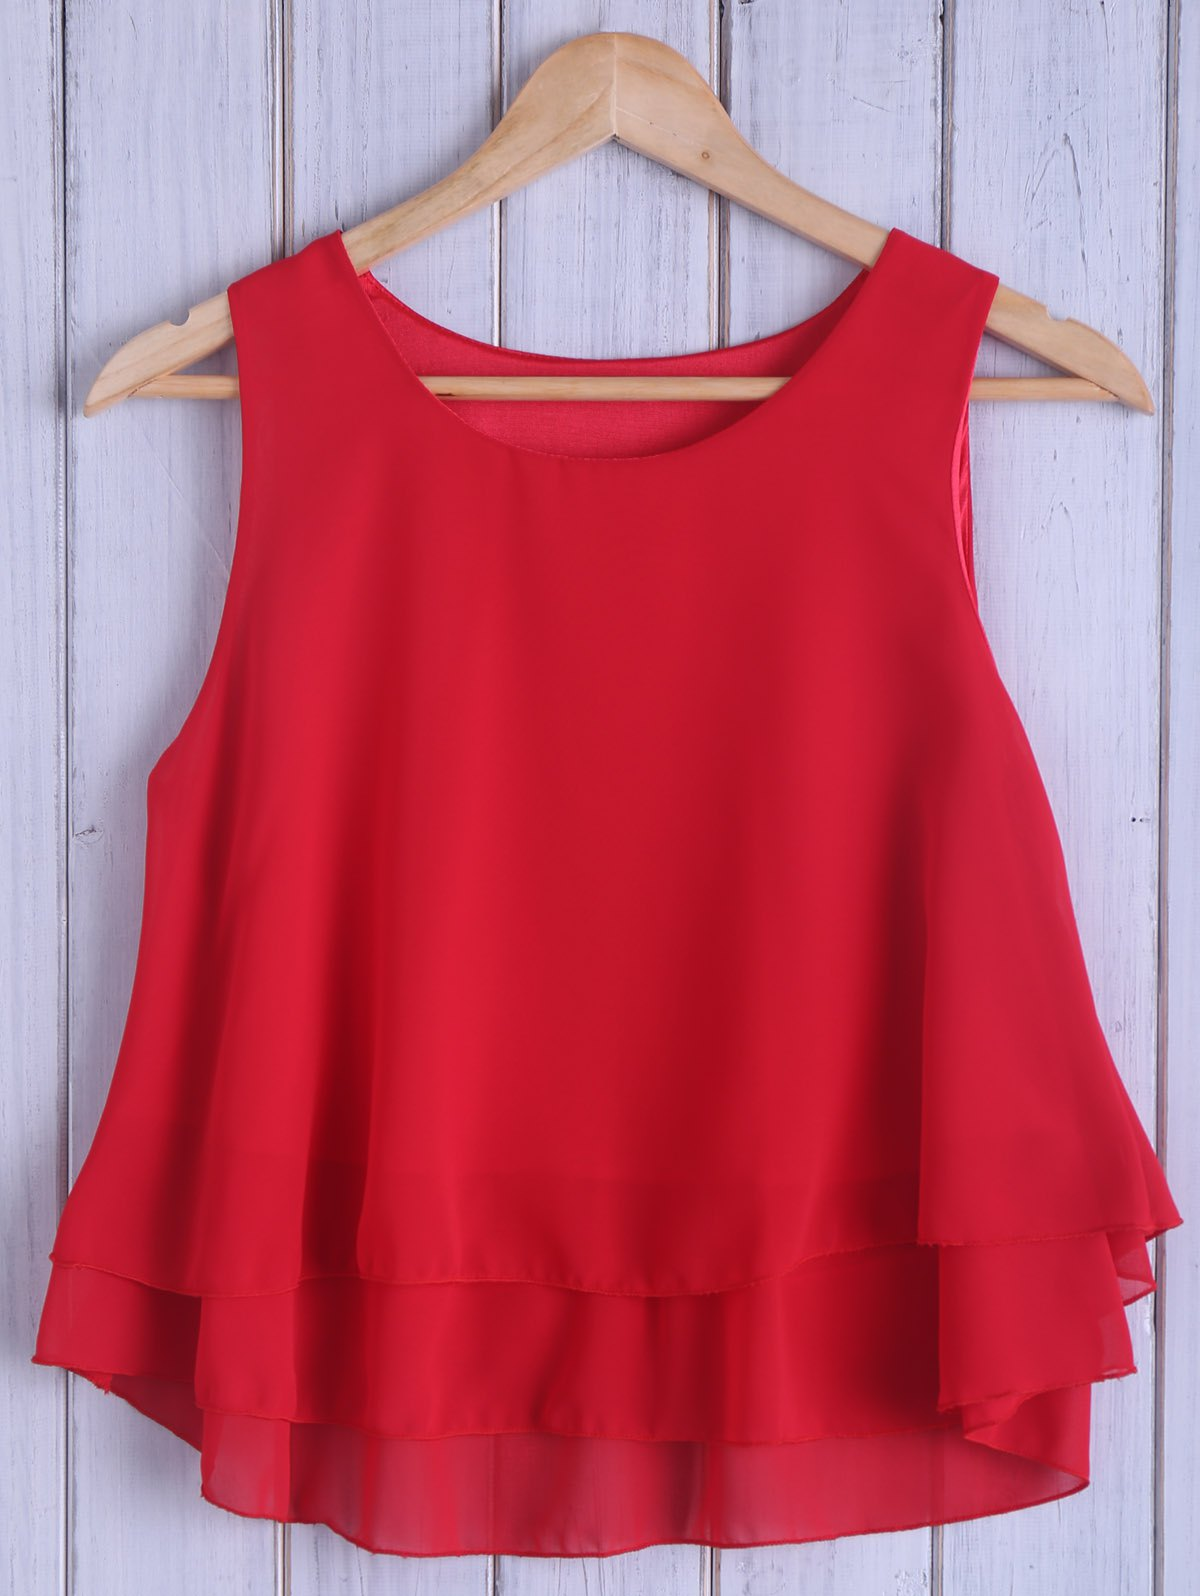 Fashionable Round Neck Loose-Fitting Pure Color Women's Tank Top - RED ONE SIZE(FIT SIZE XS TO M)